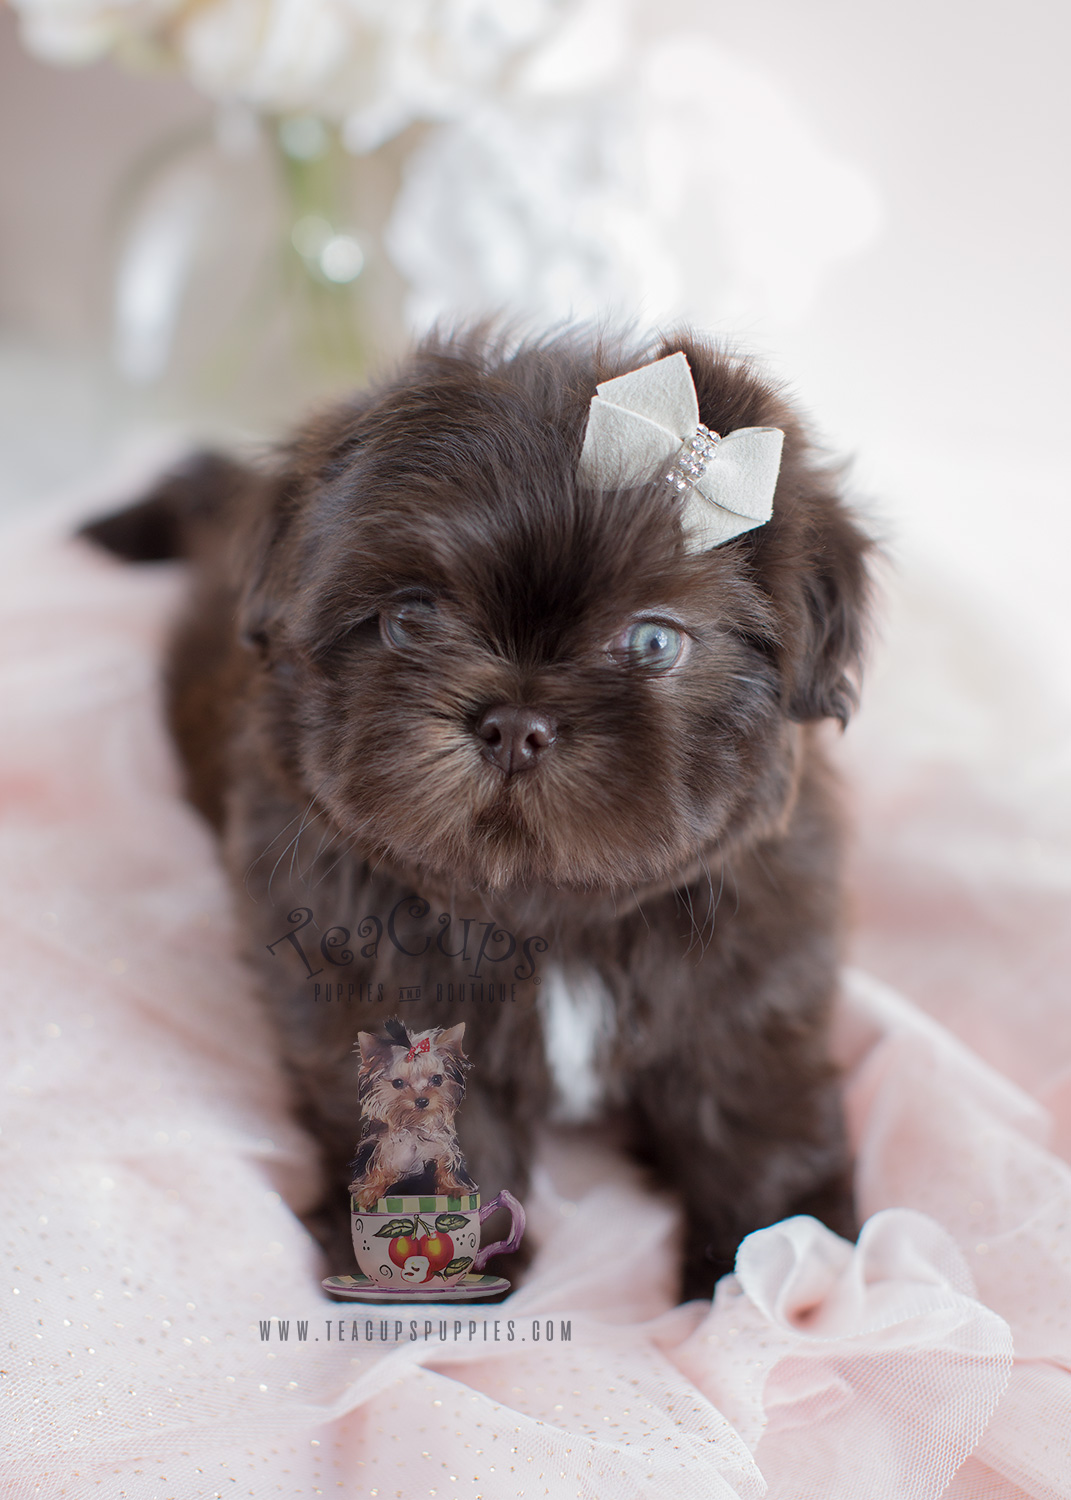 Salon Miniature Adorable Little Shih Tzu Puppies For Sale | Teacups